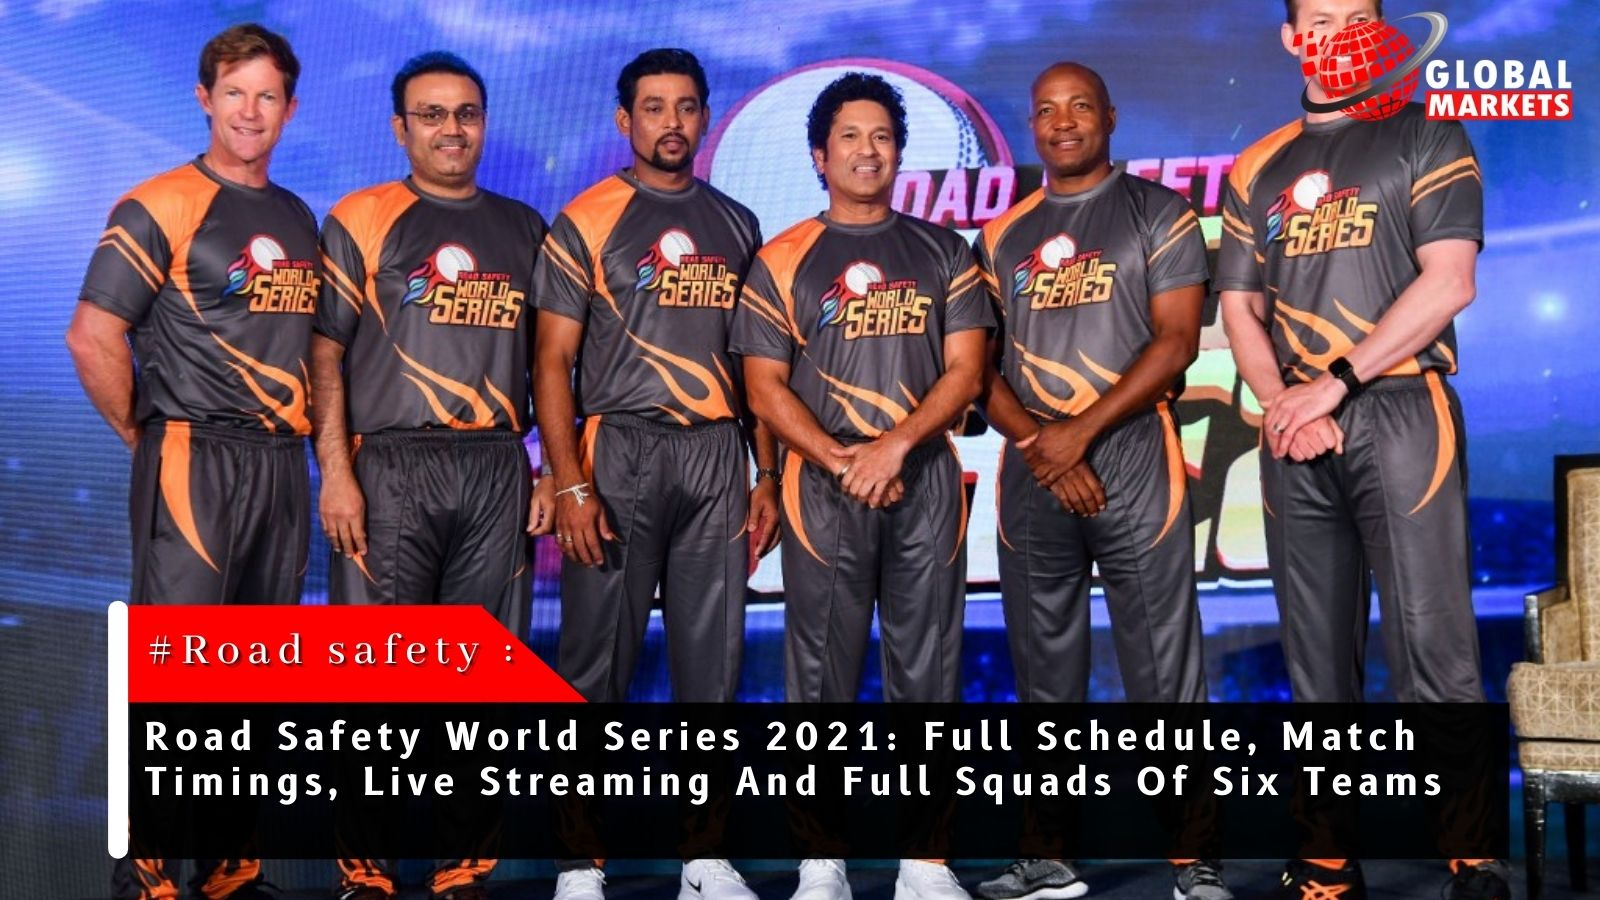 Road Safety World Series 2021: The legends back in action- All you need to know.